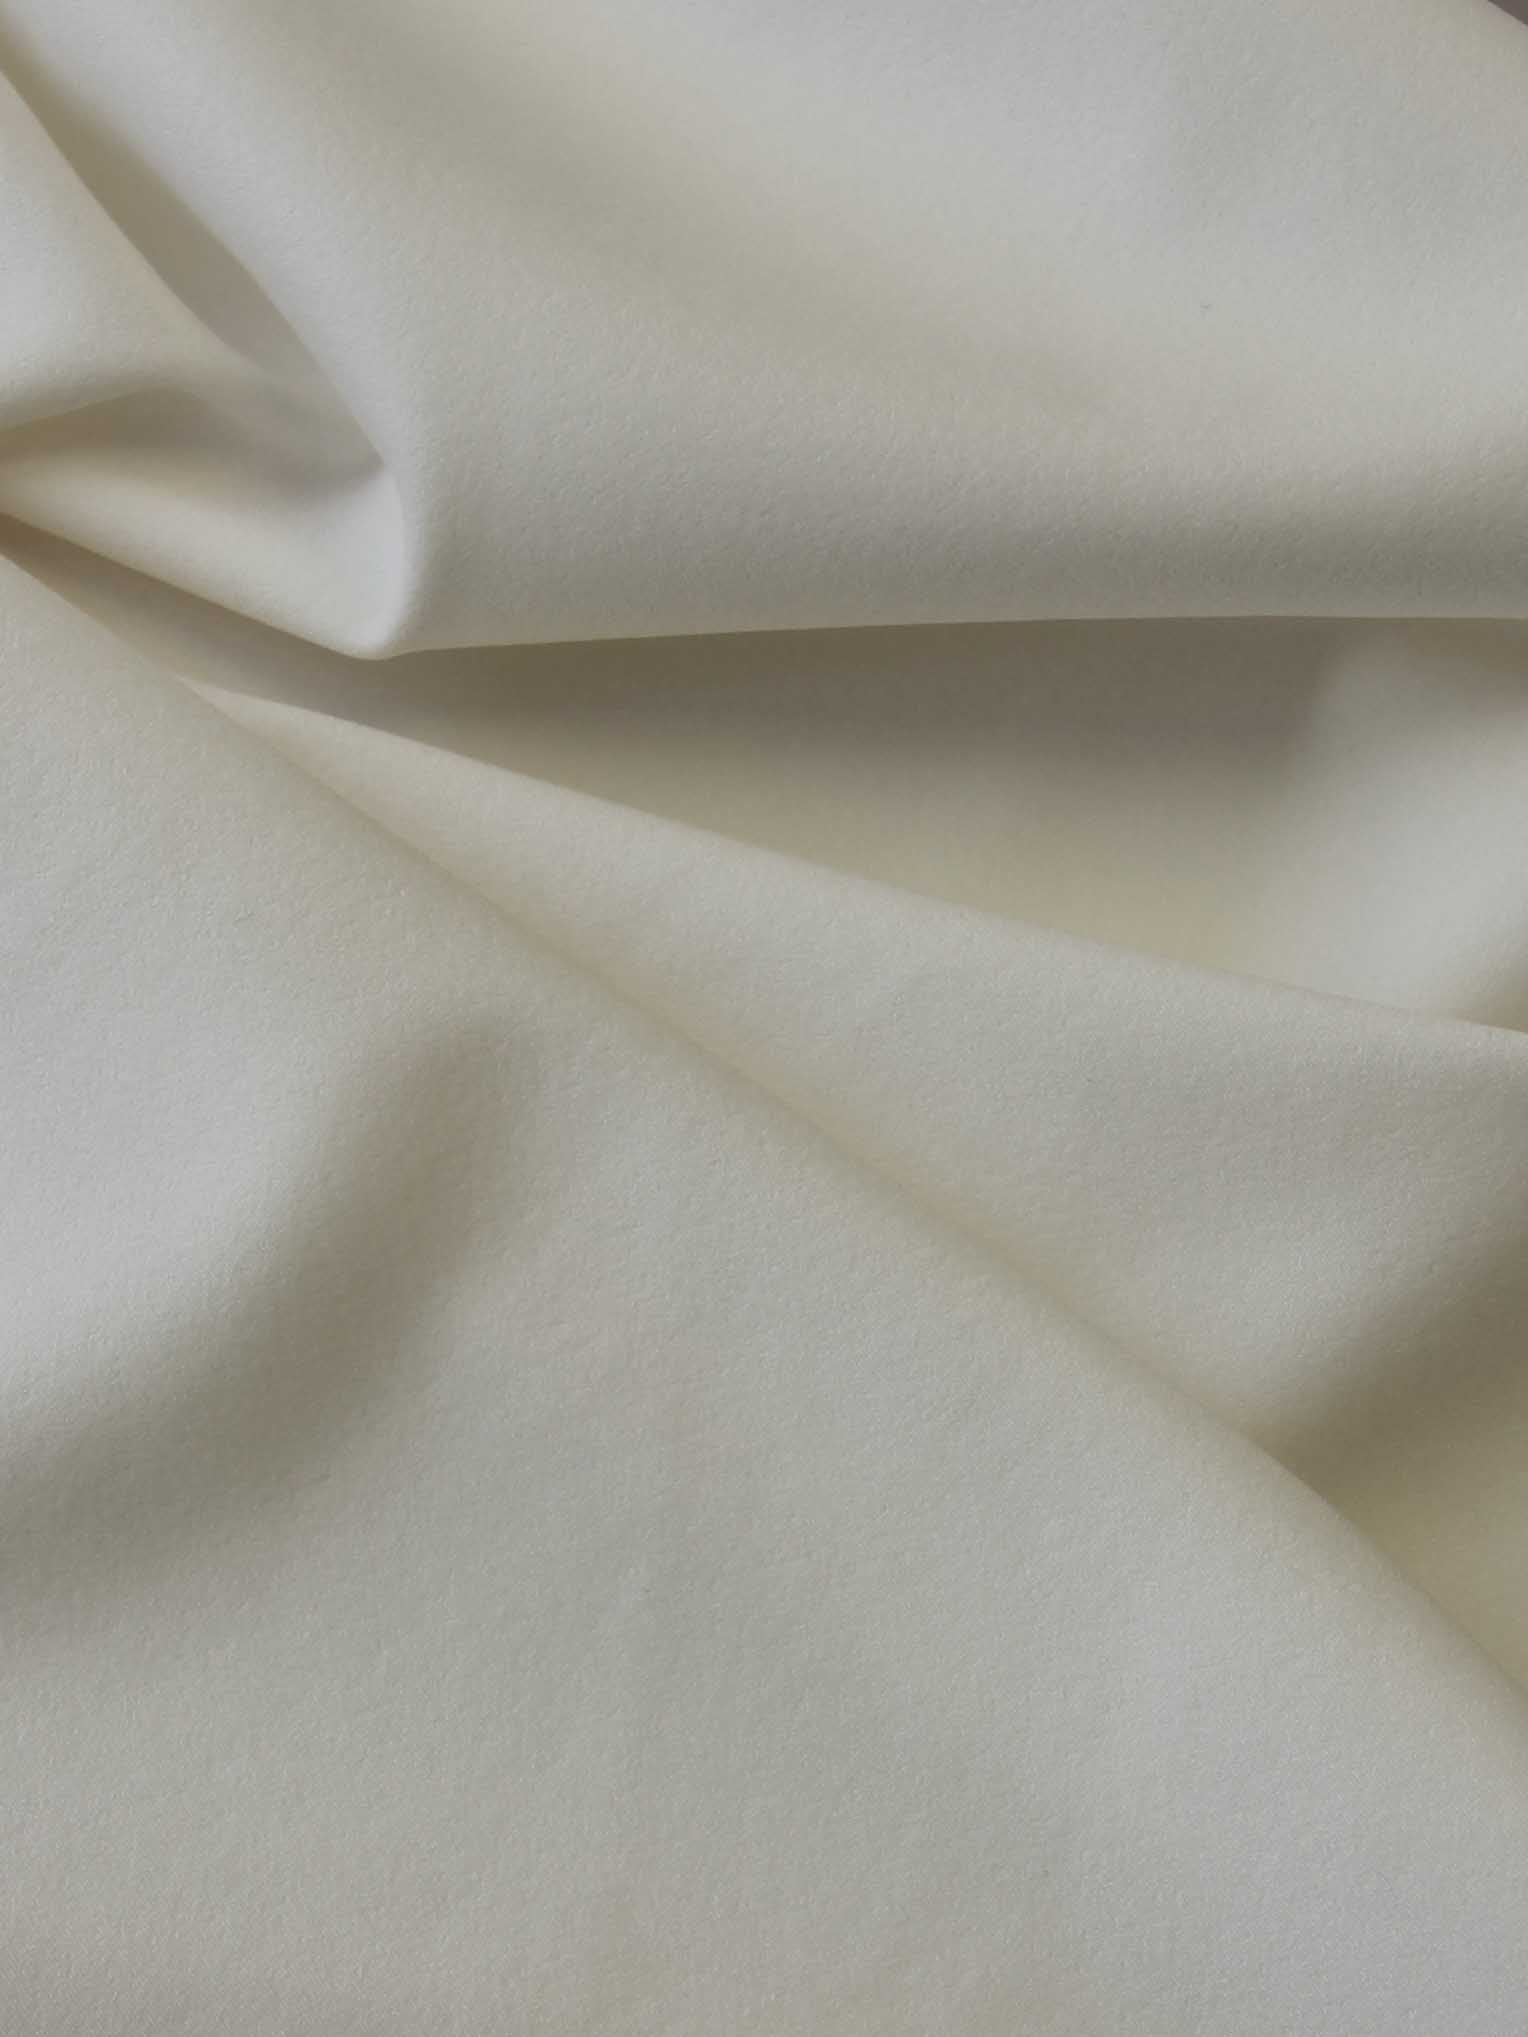 Polyester Stretch Crepe (142cm/56